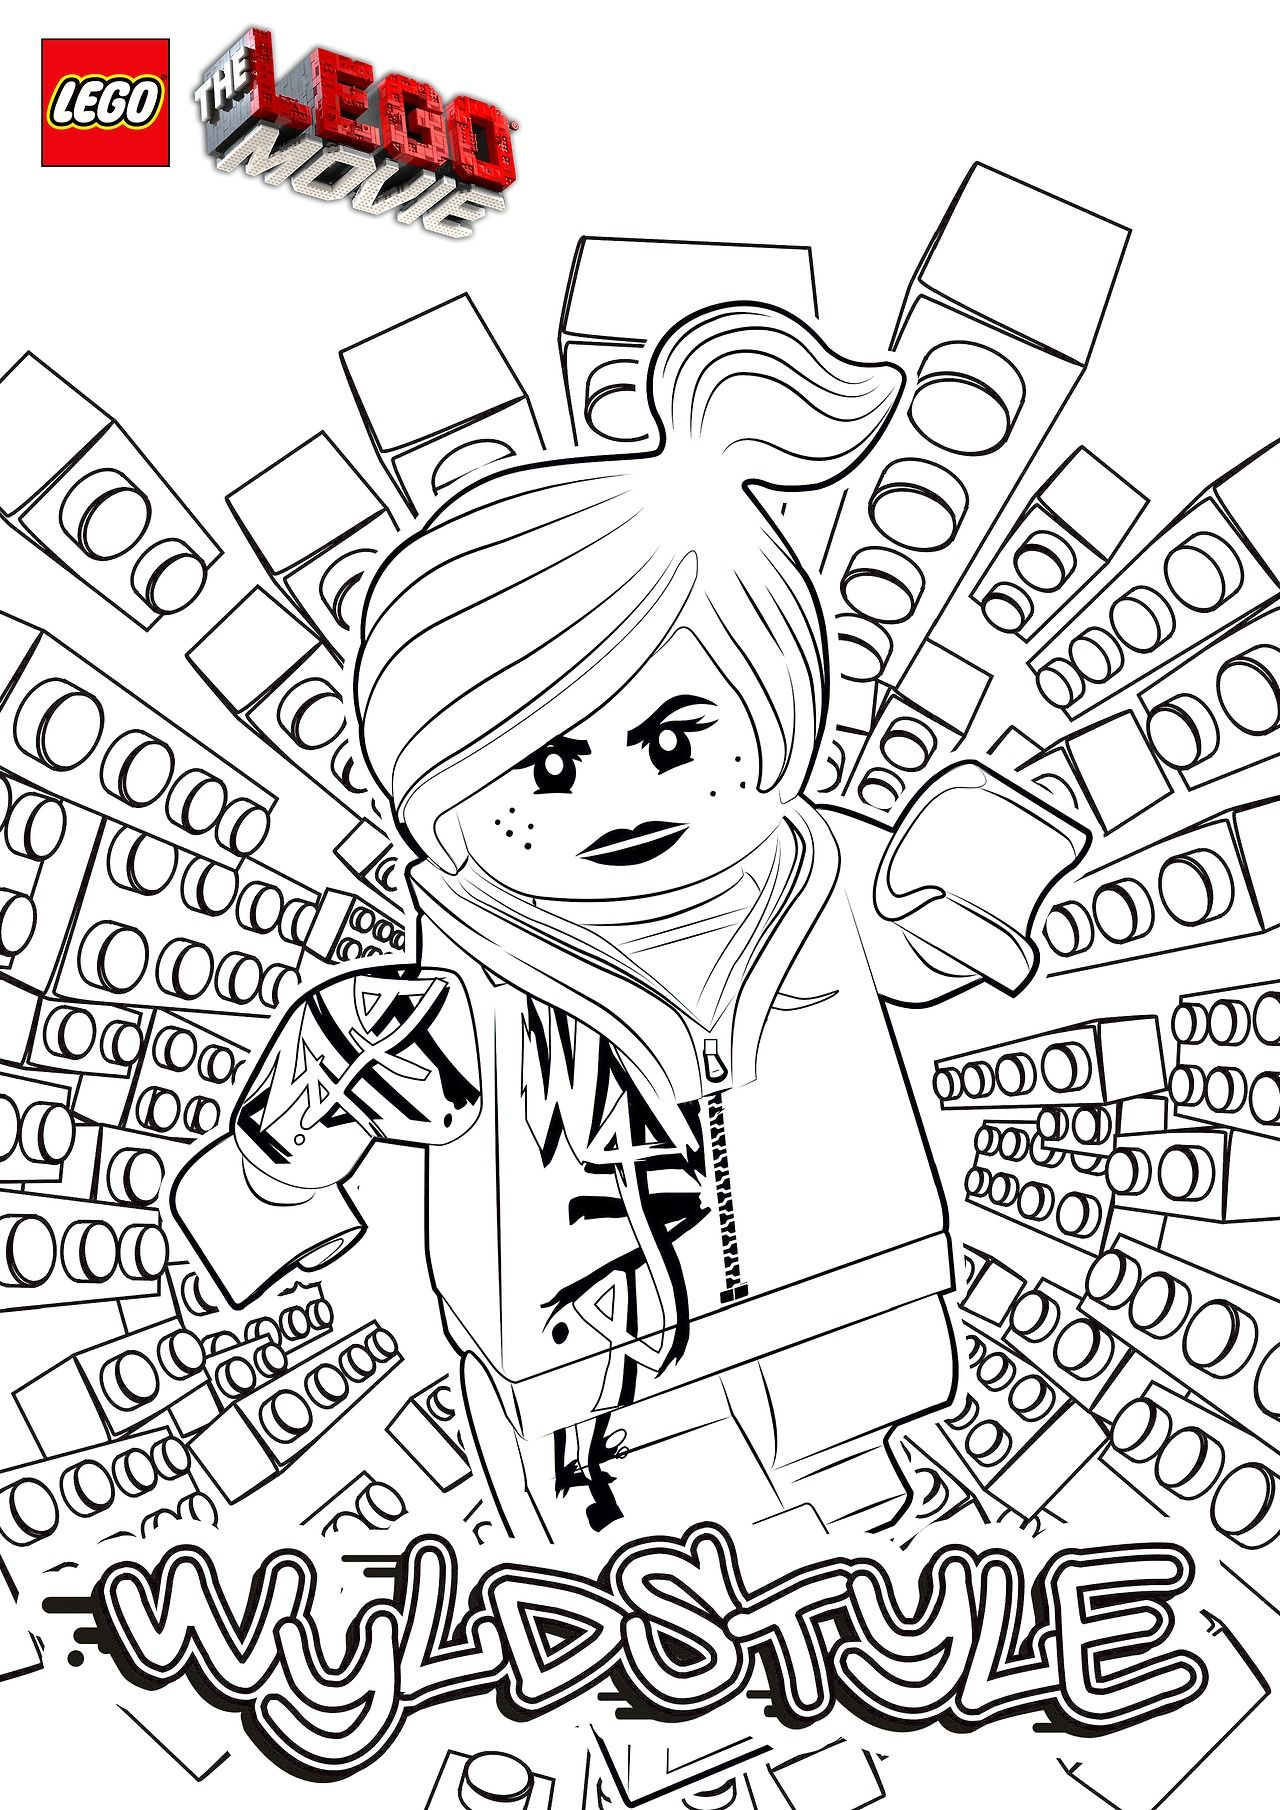 Printable Lego Movie Coloring Pages